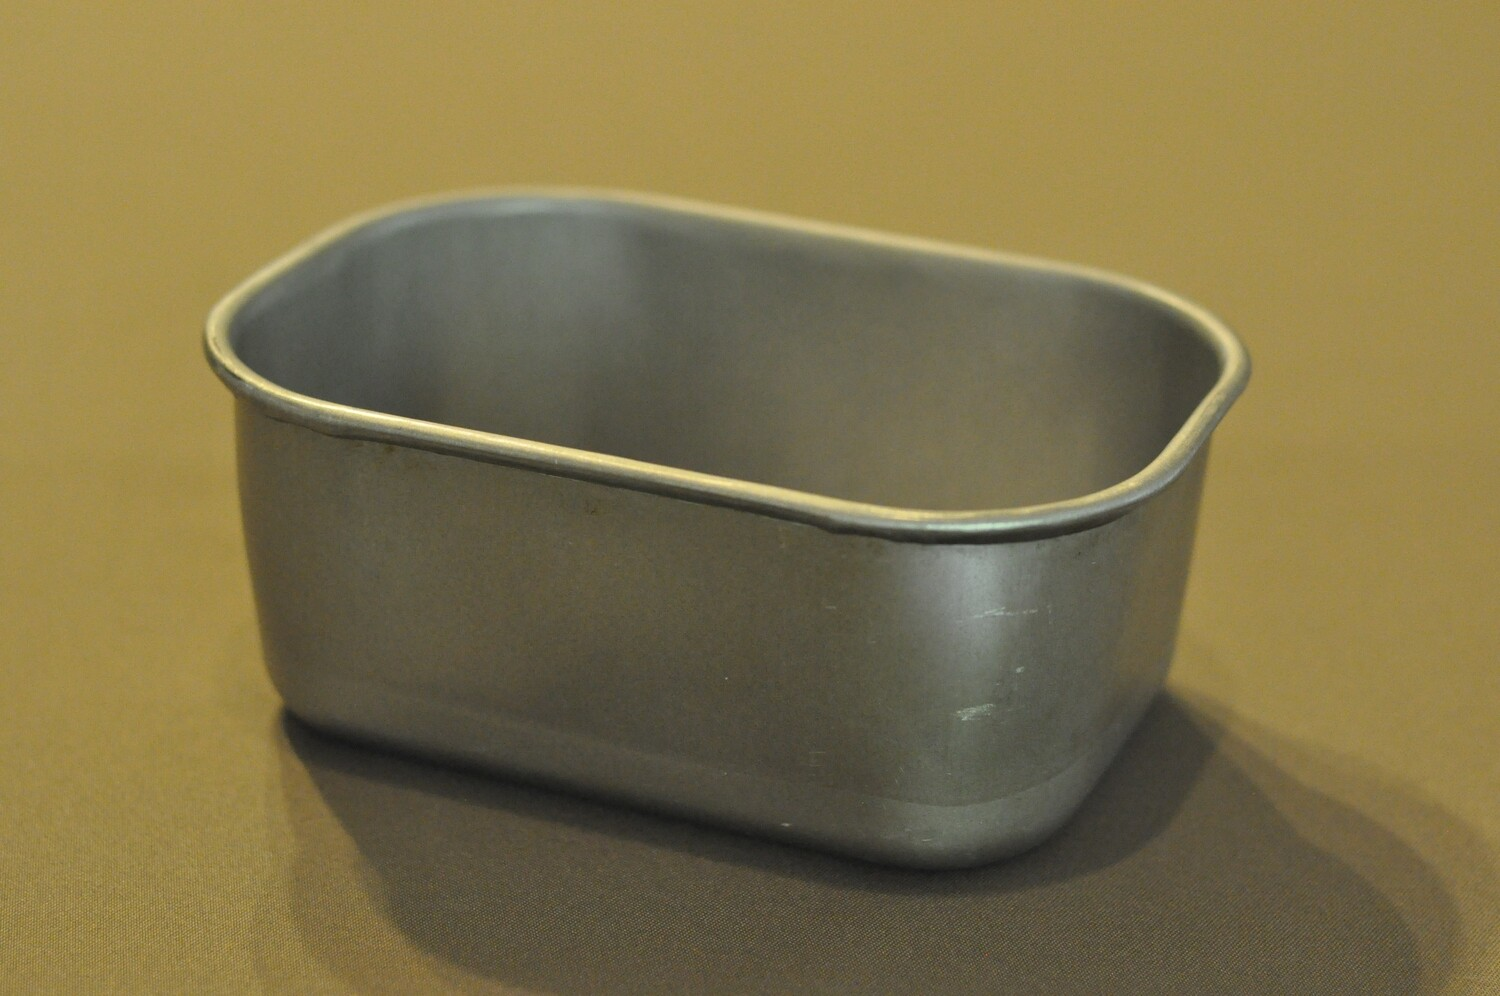 OMG Bread Tin - Commercial Grade metal Bread Tin that will last a life time.